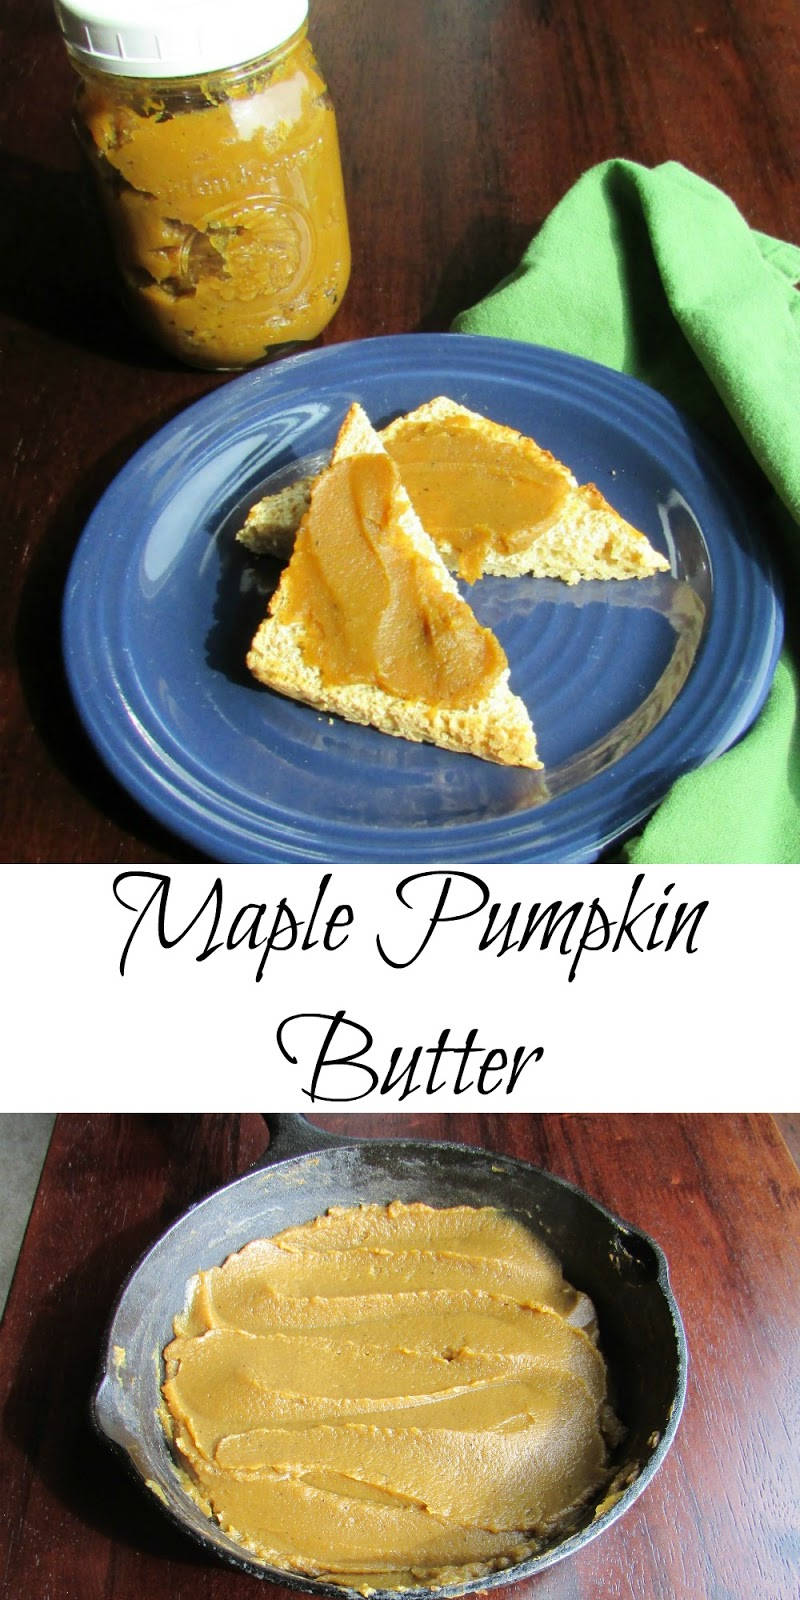 Rich and smooth pumpkin butter sweetened with maple syrup is the perfect spread for toast or biscuits. It is also great as a building block for desserts. Luckily it is easy to make too!